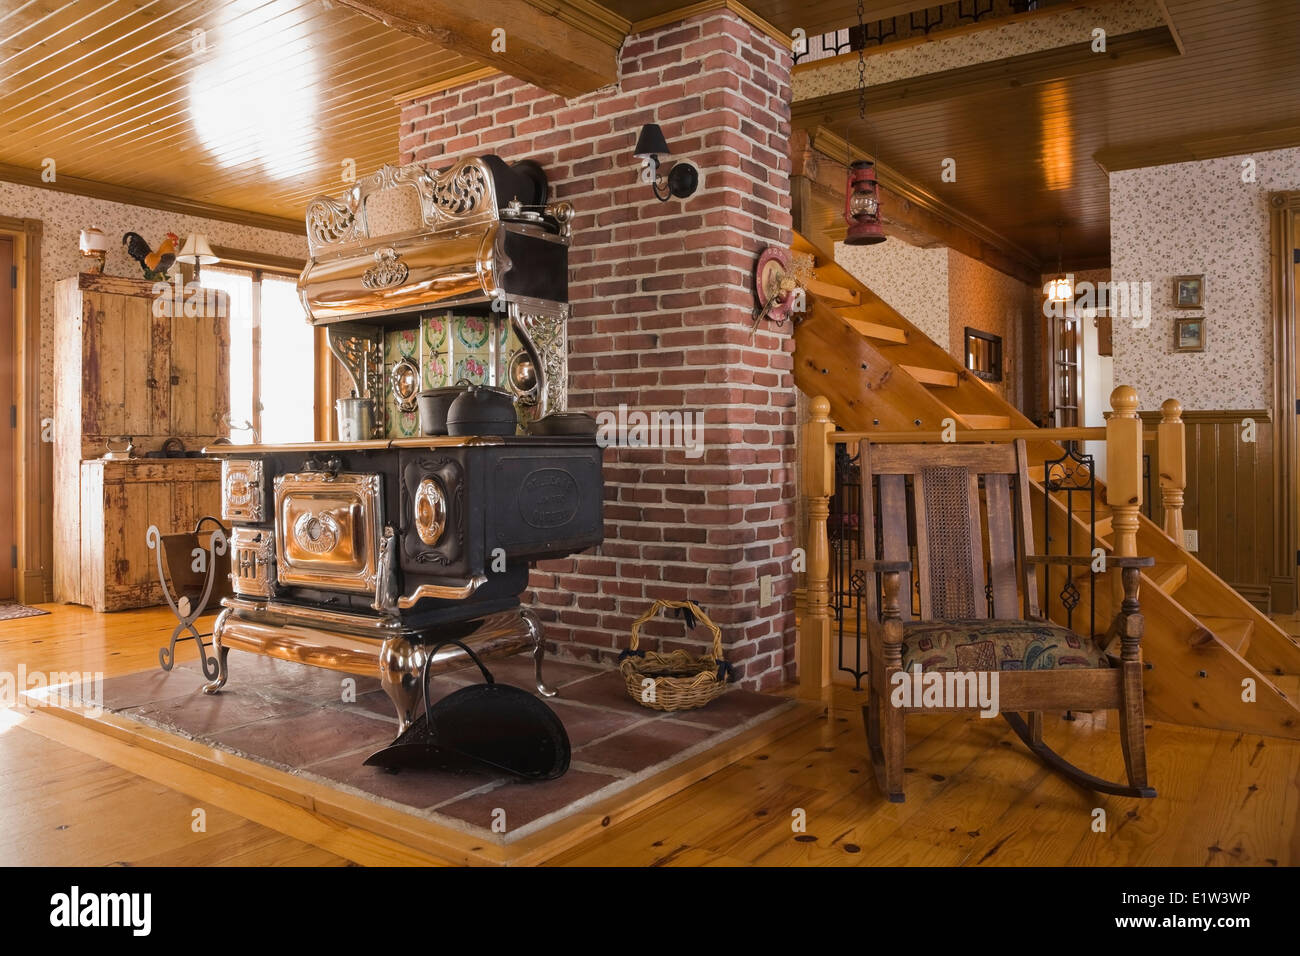 Old Legare's Rural antique wood stove in the living room a Canadiana cottage style fieldstone residential home - Stock Image